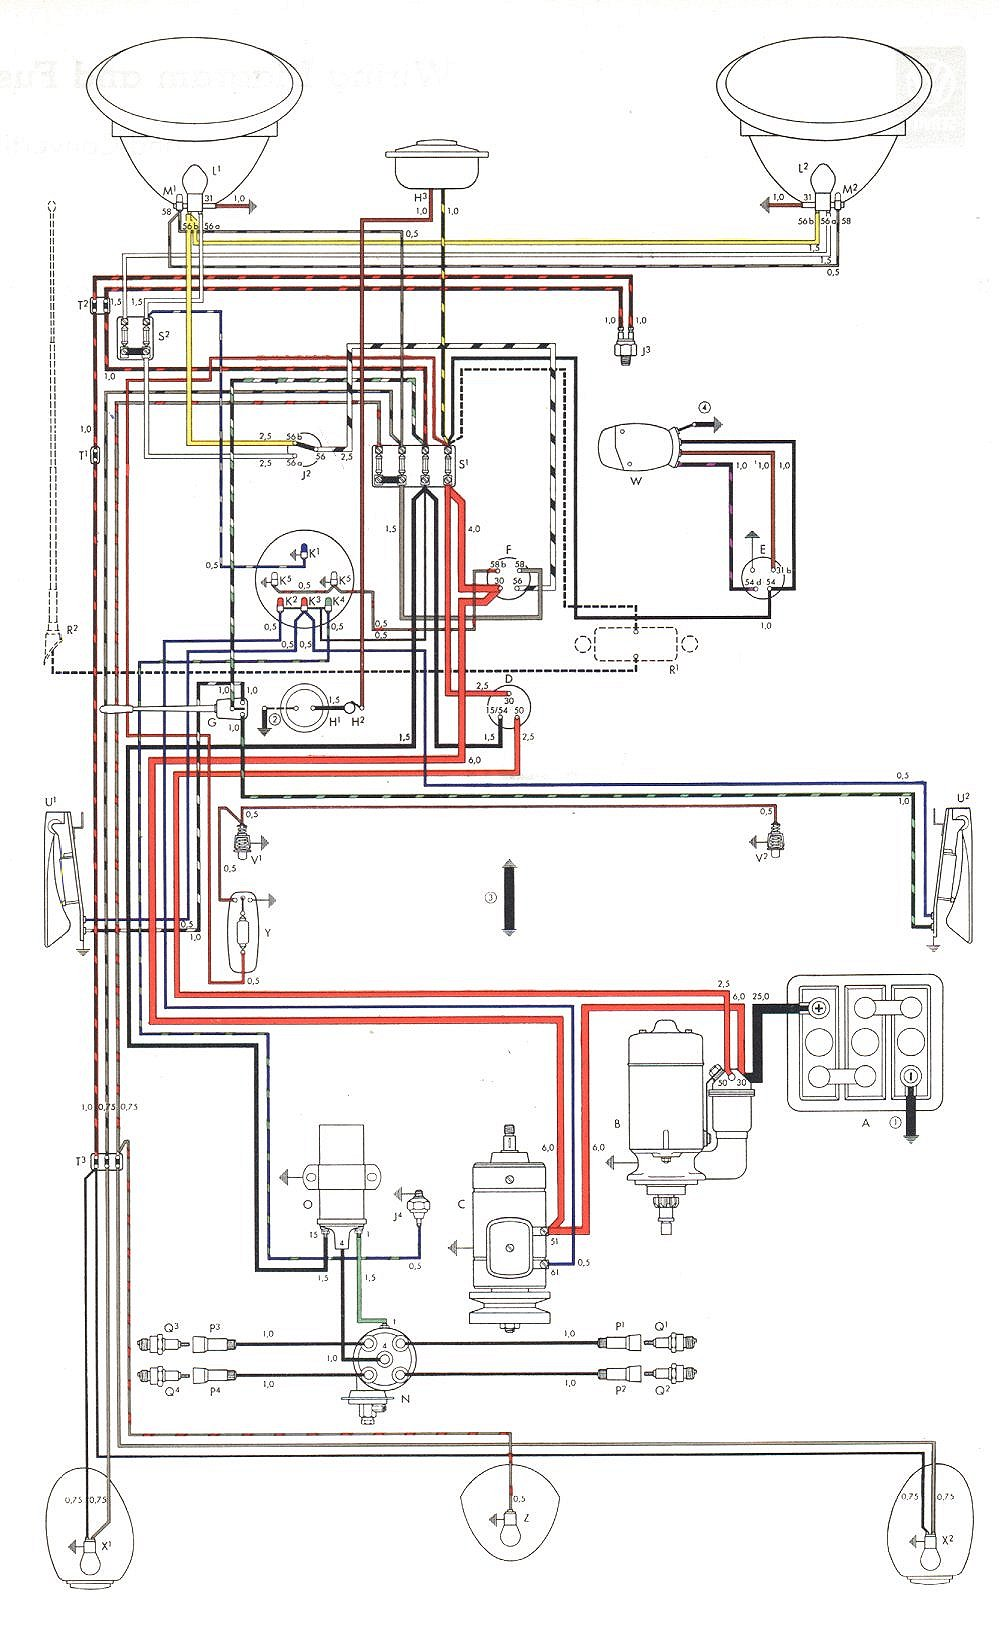 wiring diagram for air cooled vw online schematic diagram u2022 rh holyoak co Residential Electrical Wiring Diagrams Electrical Outlet Wiring Diagram